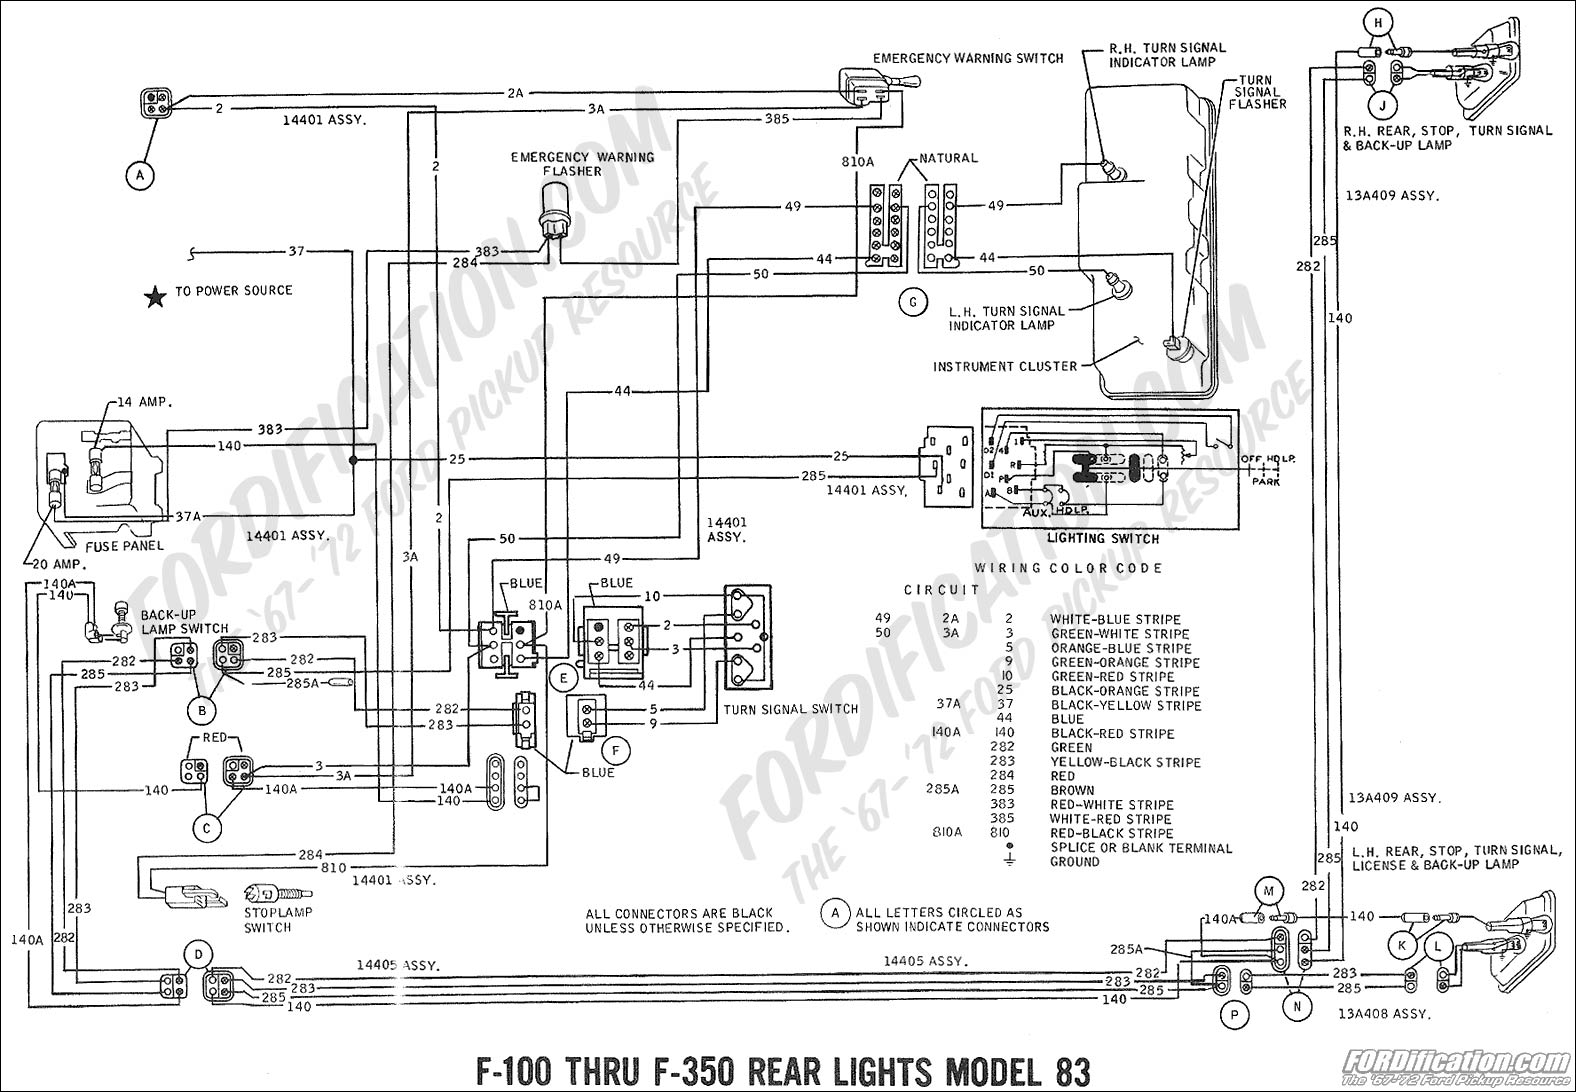 wiring diagram for 1981 ford 302 all wiring diagram 1975 Ford F-250 Wiring Diagram